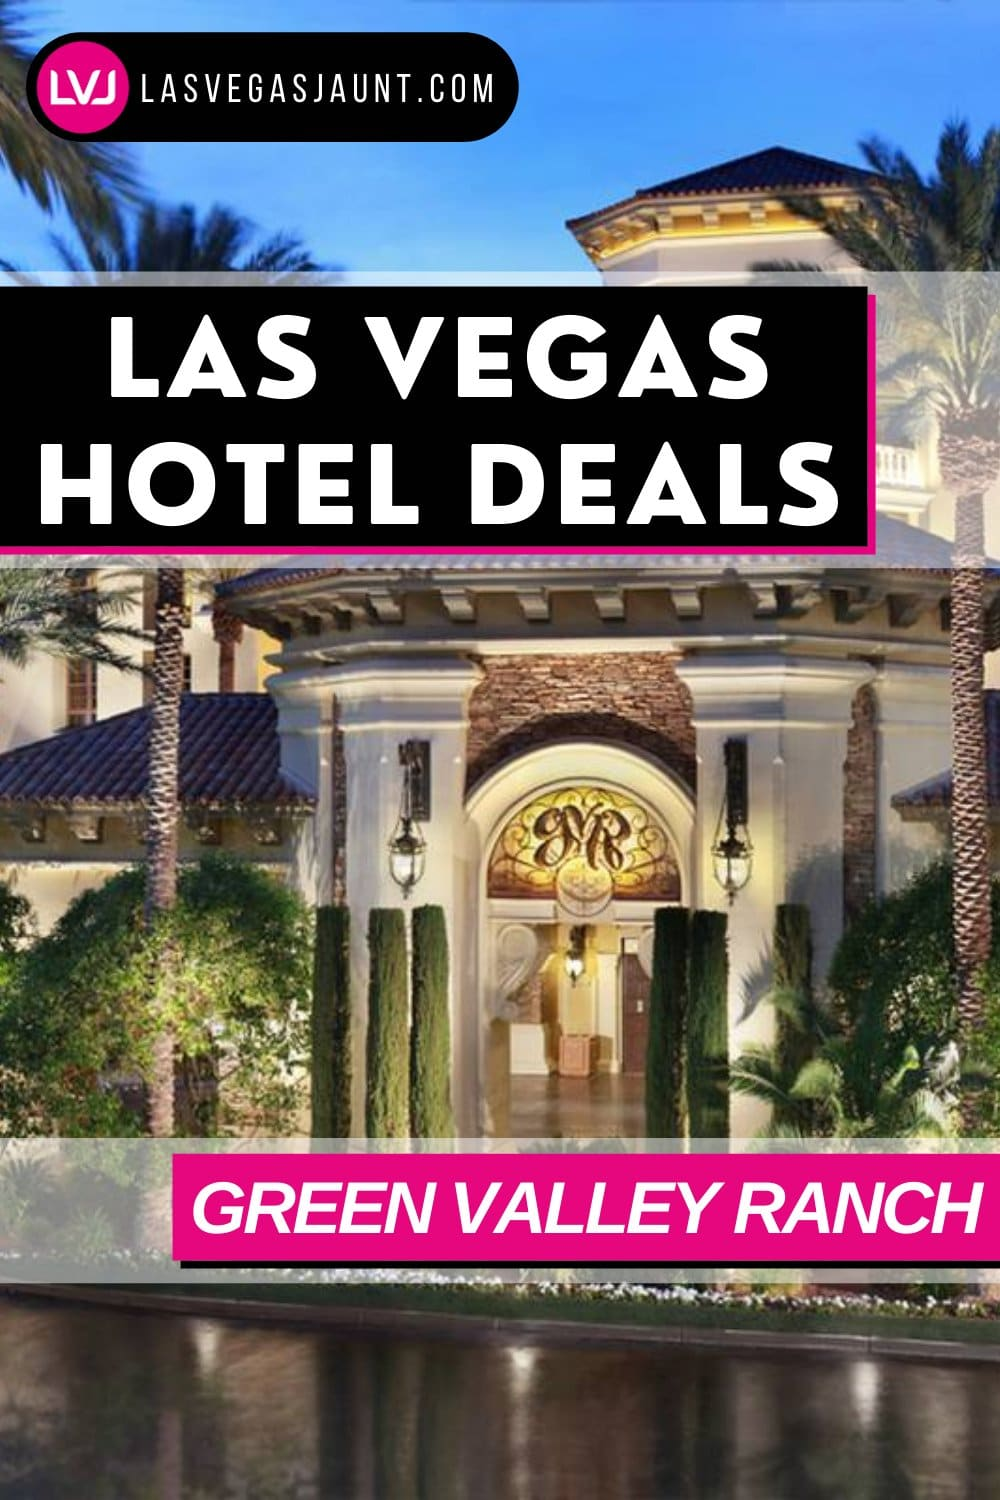 Green Valley Ranch Hotel Las Vegas Deals Promo Codes & Discounts